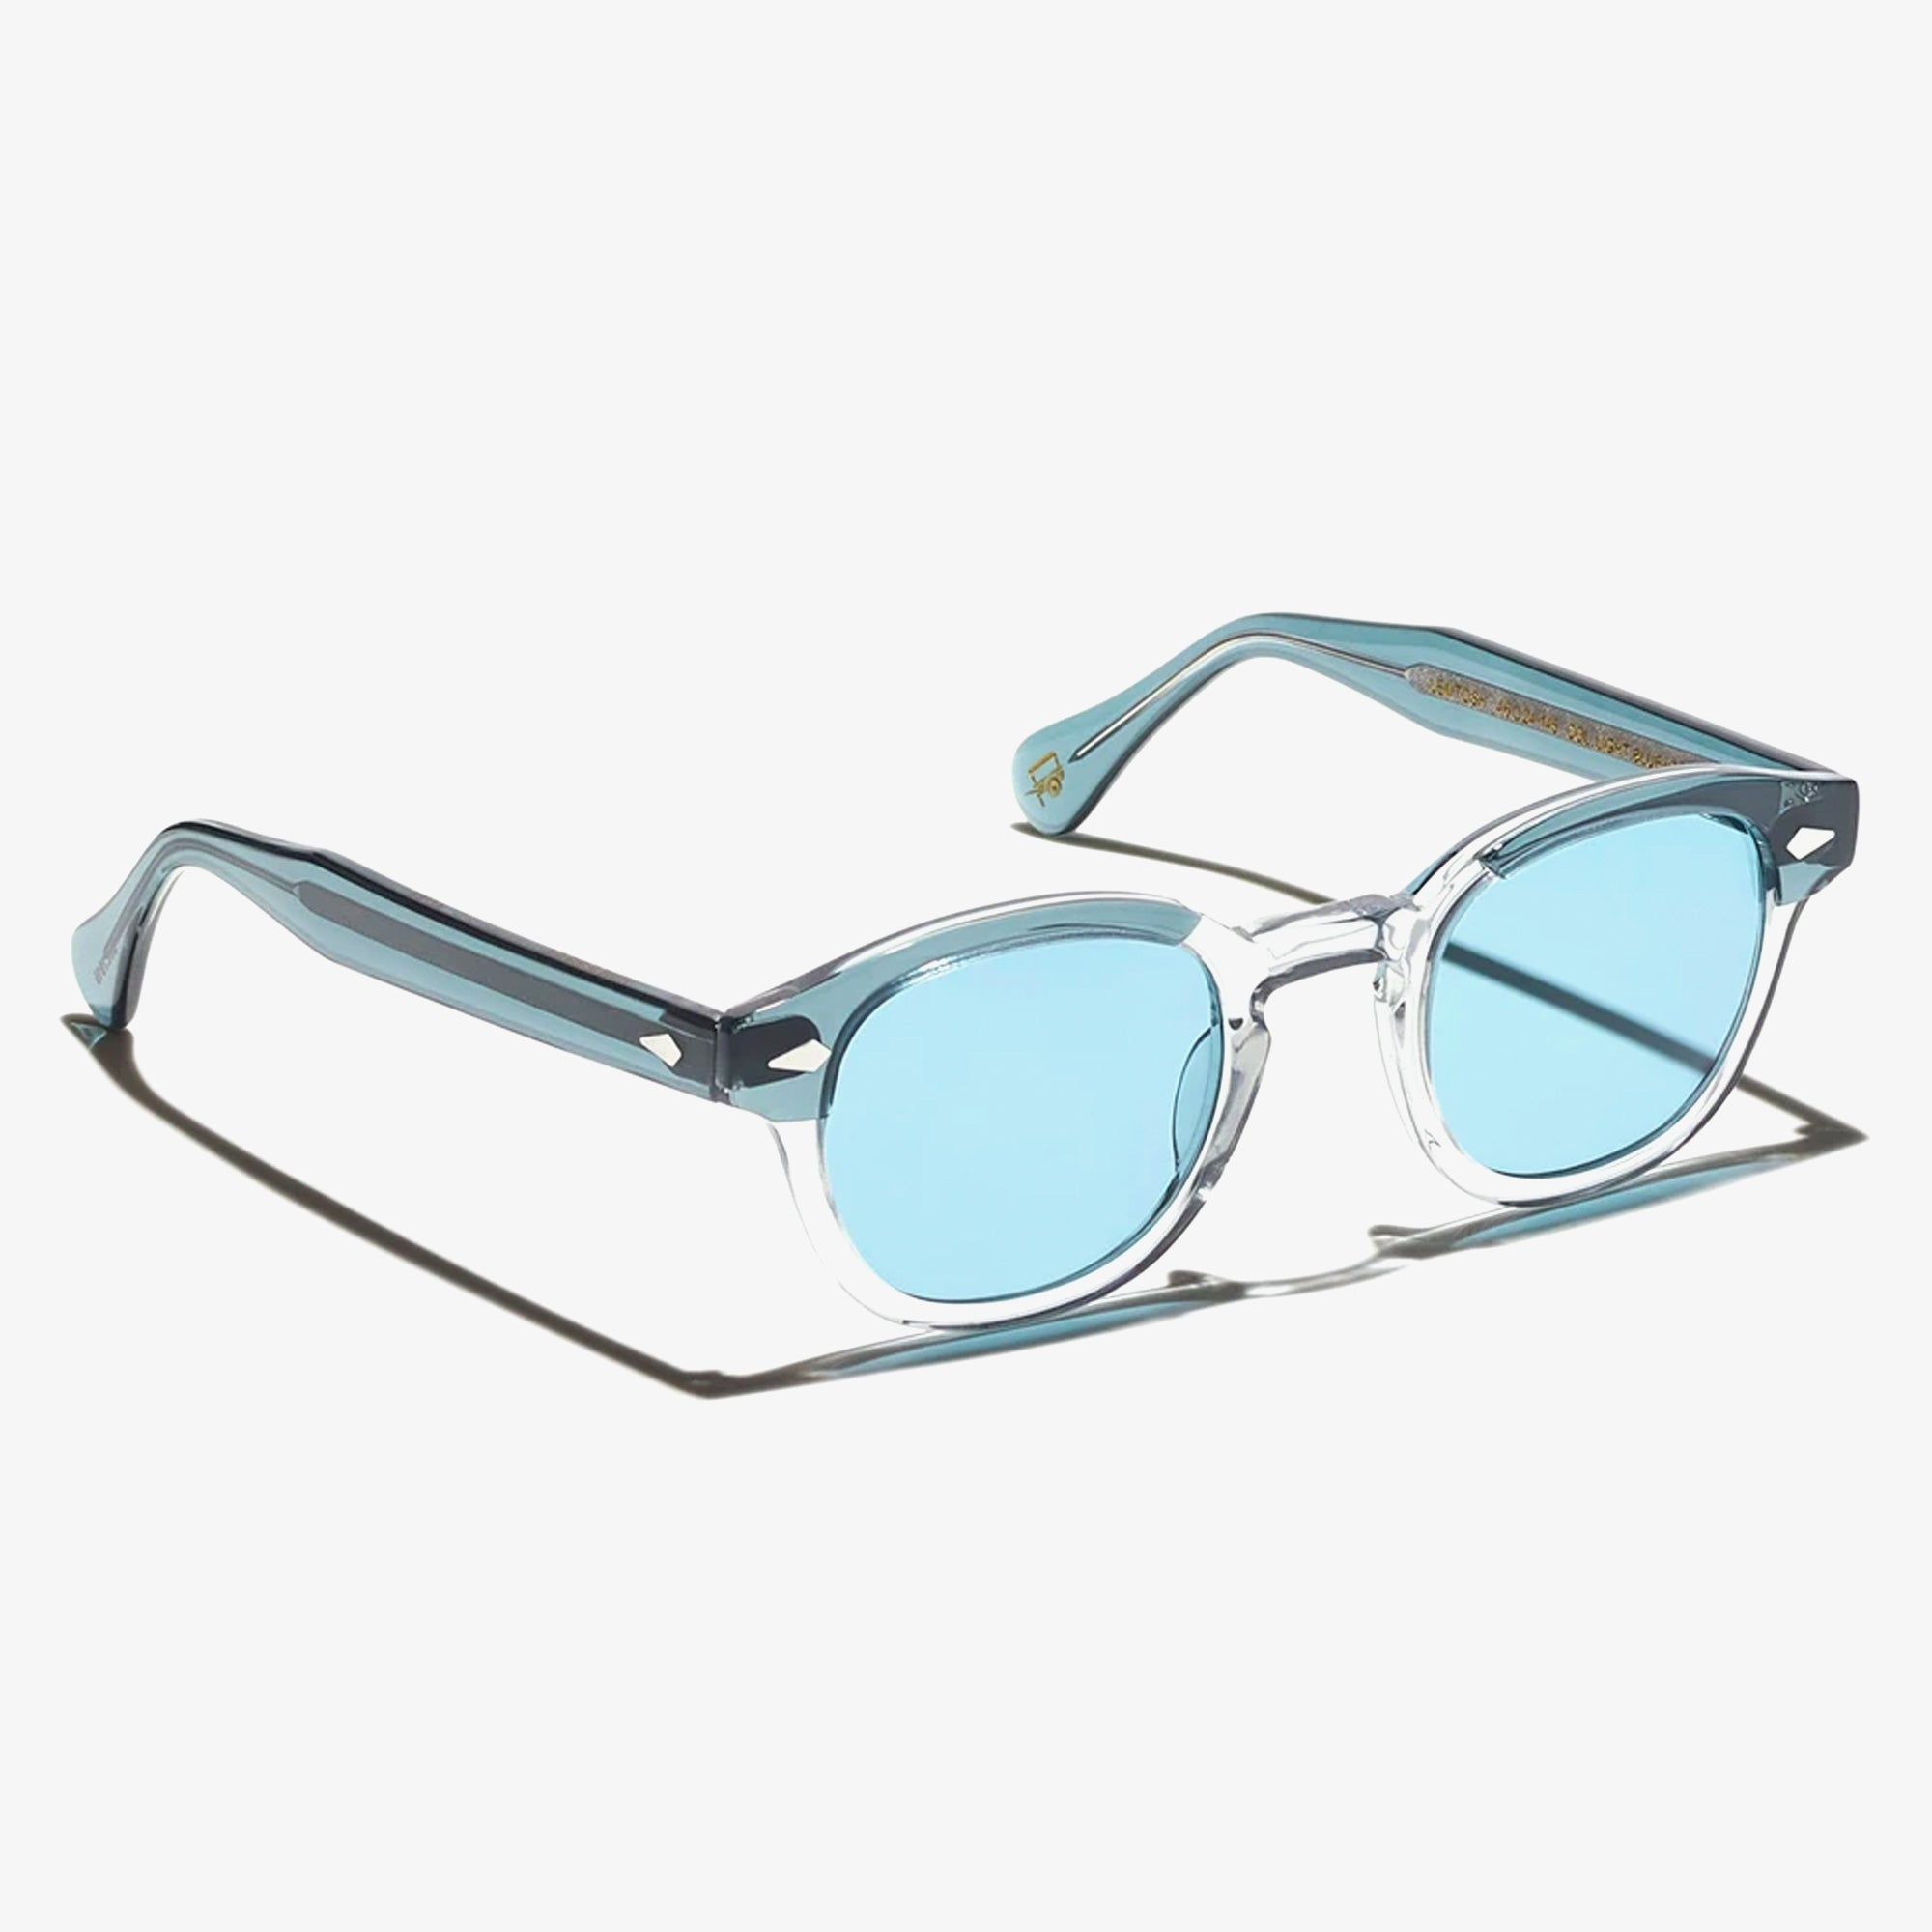 Moscot Lemtosh Sunglasses - Light Blue Grey/ Mineral Blue 2